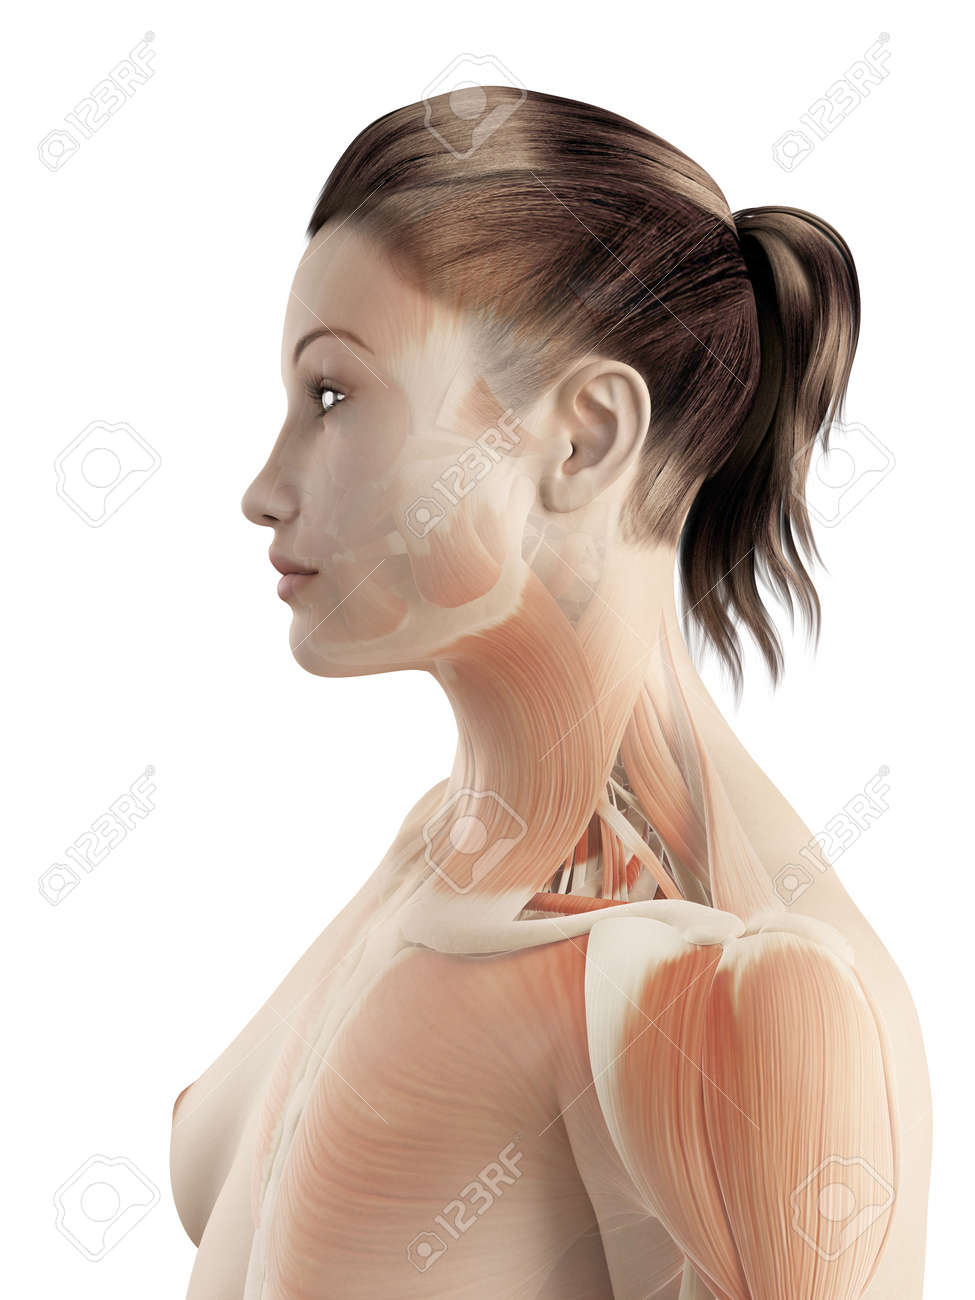 Muscles Of The Neck Stock Photo Picture And Royalty Free Image